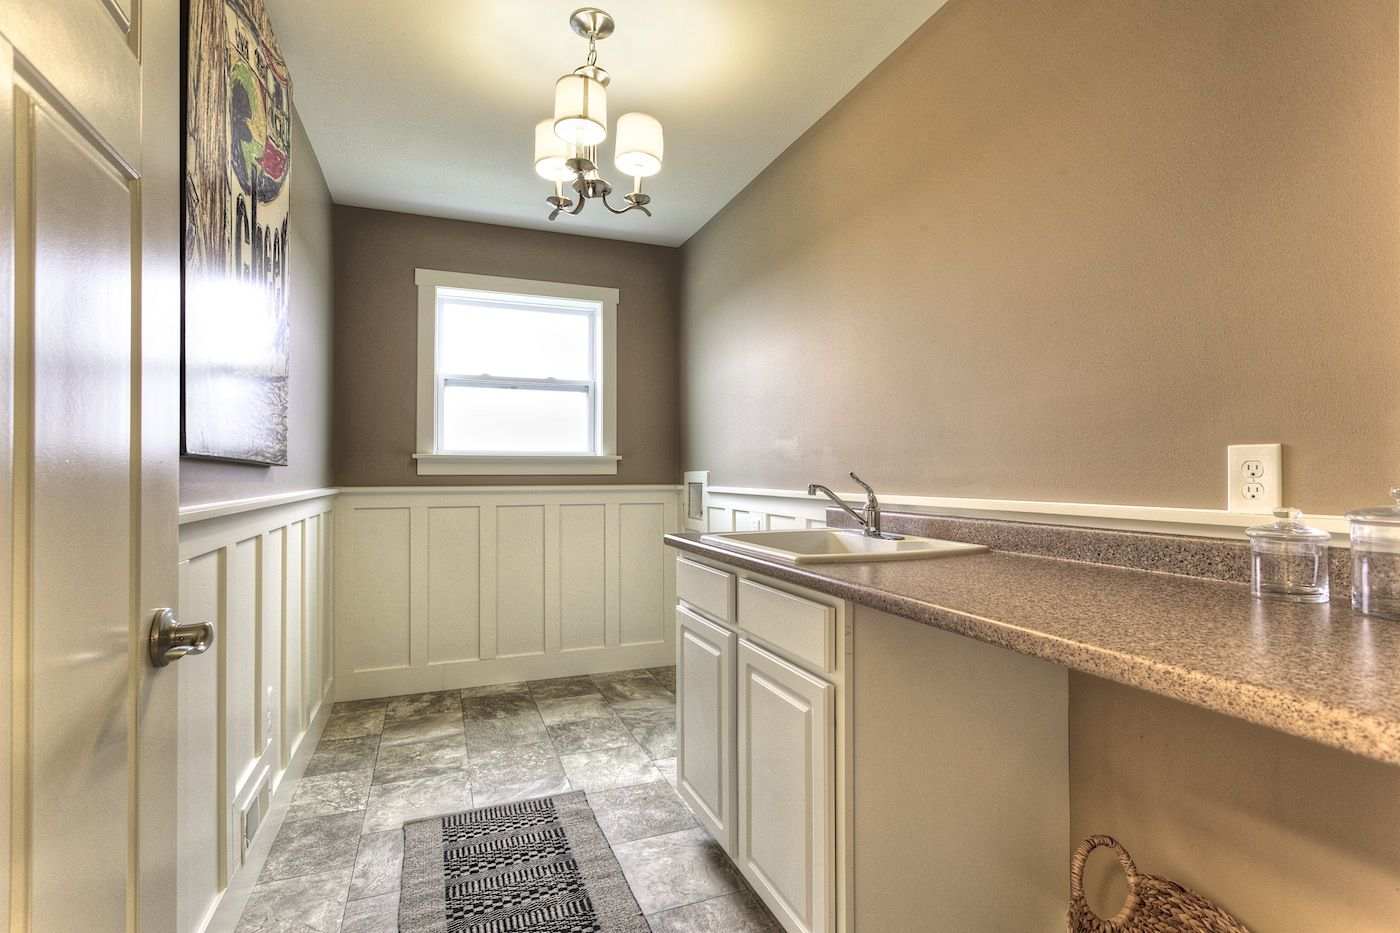 Living Area featured in the Traditions 3100 V8.0g By Allen Edwin Homes in Benton Harbor, MI